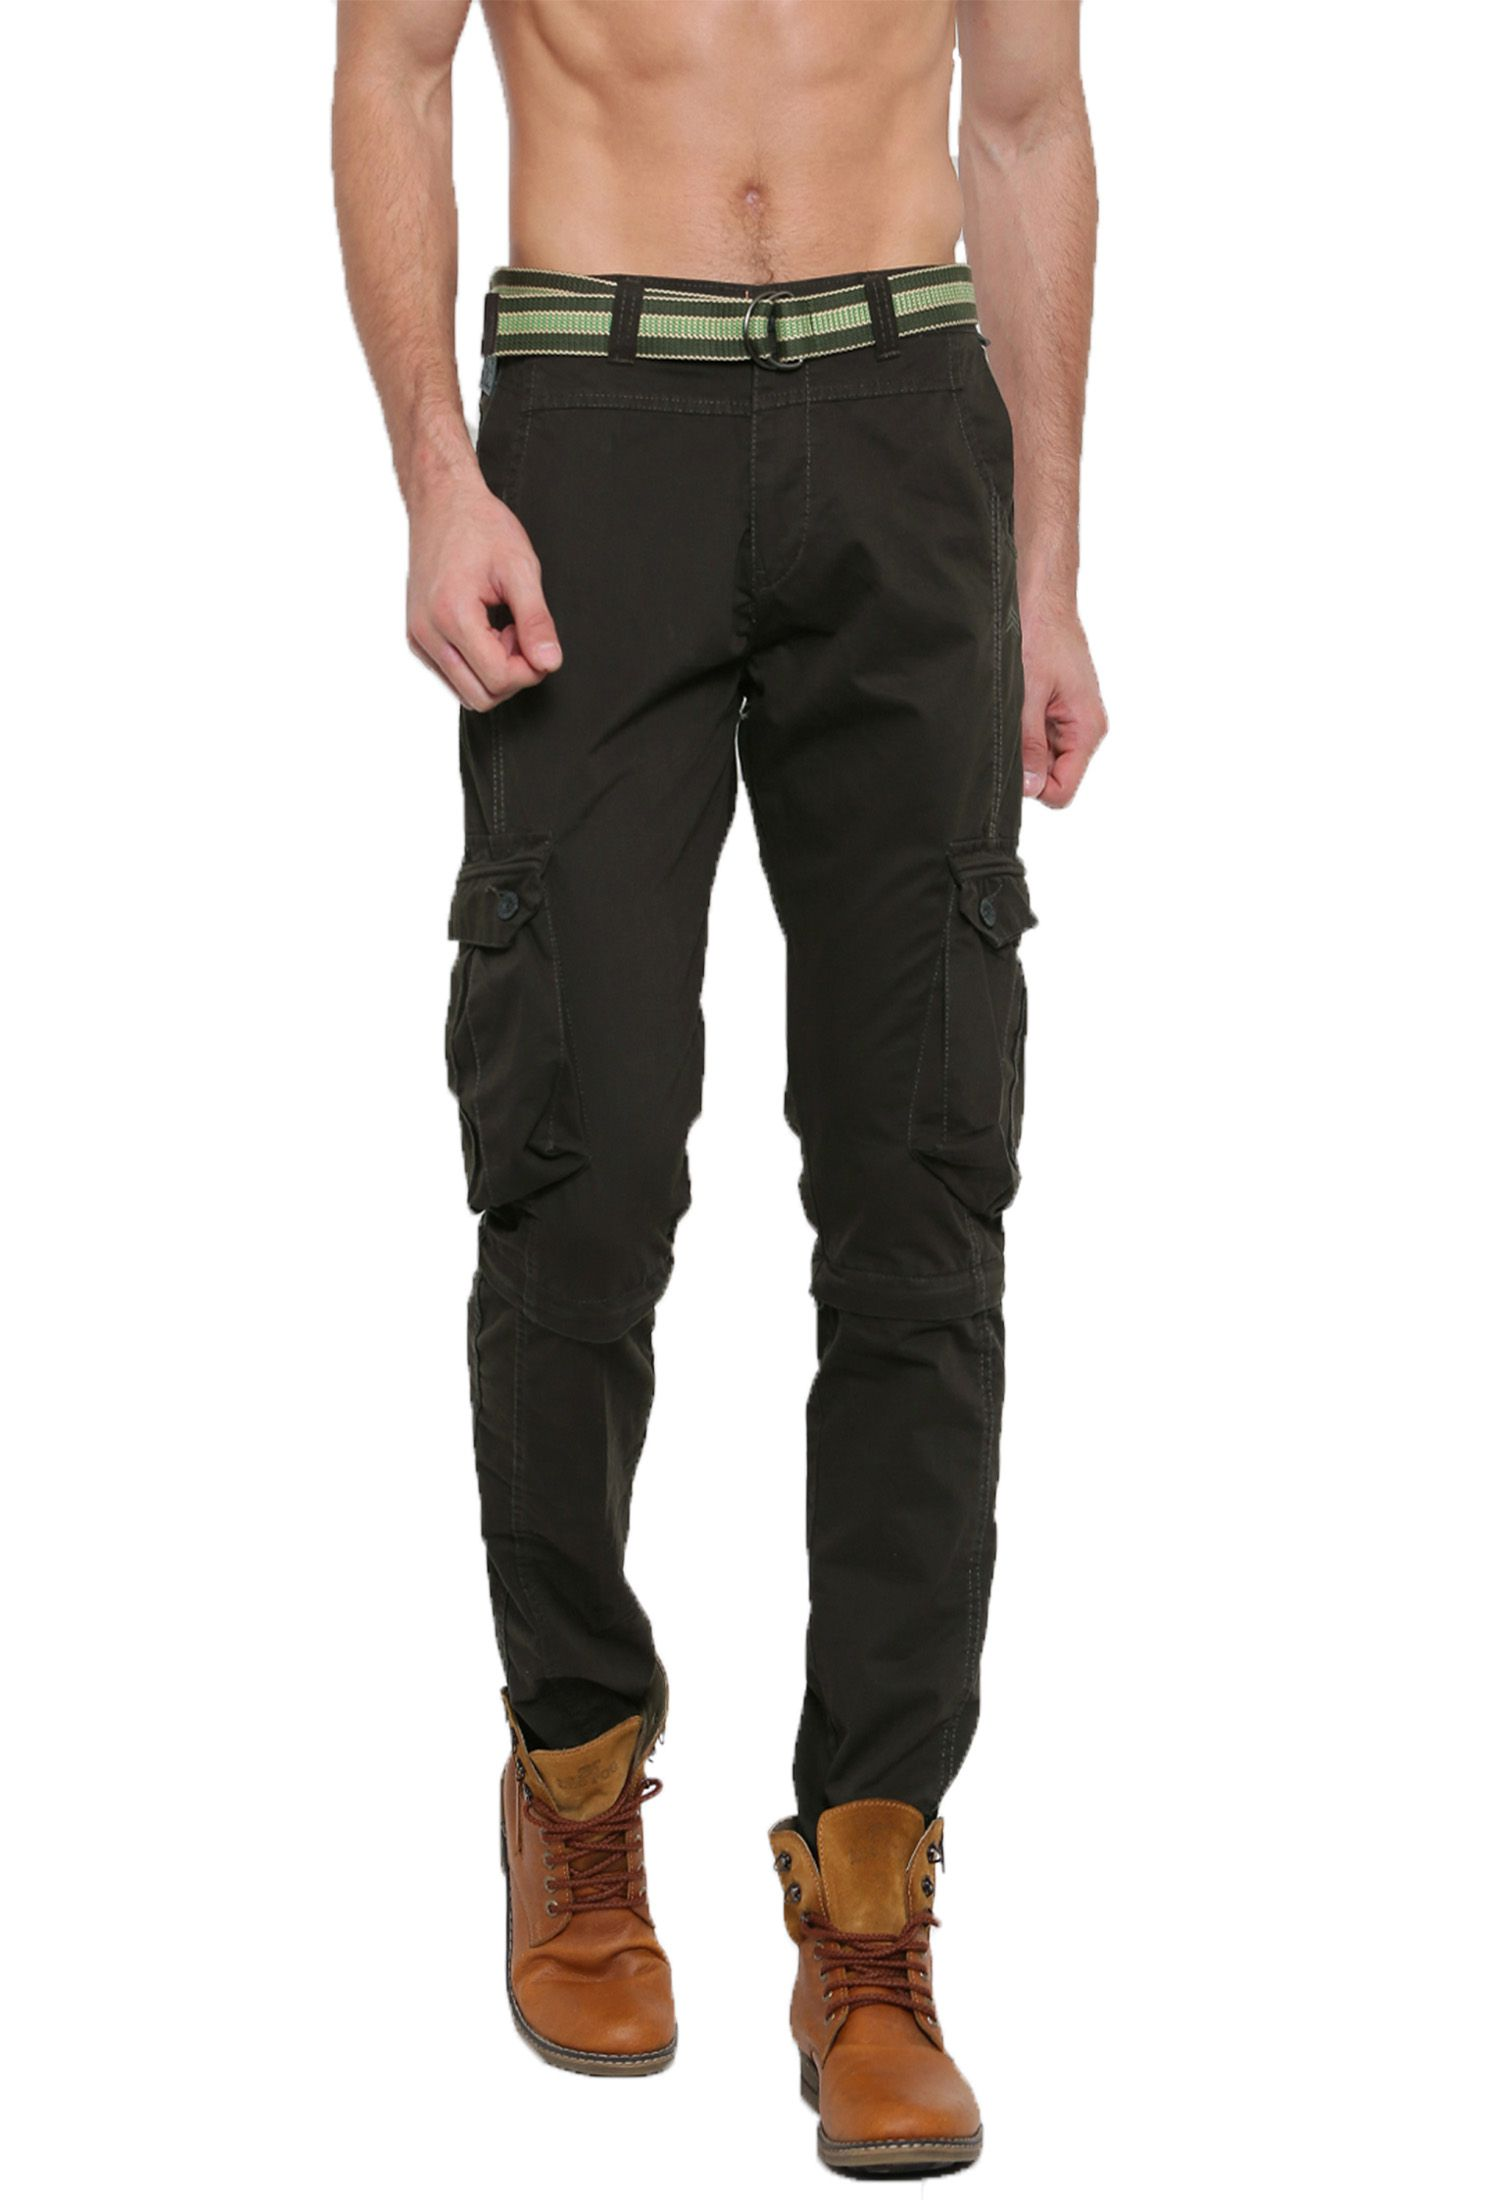 SPORTS 52 WEAR Olive Green Regular -Fit Flat Cargos